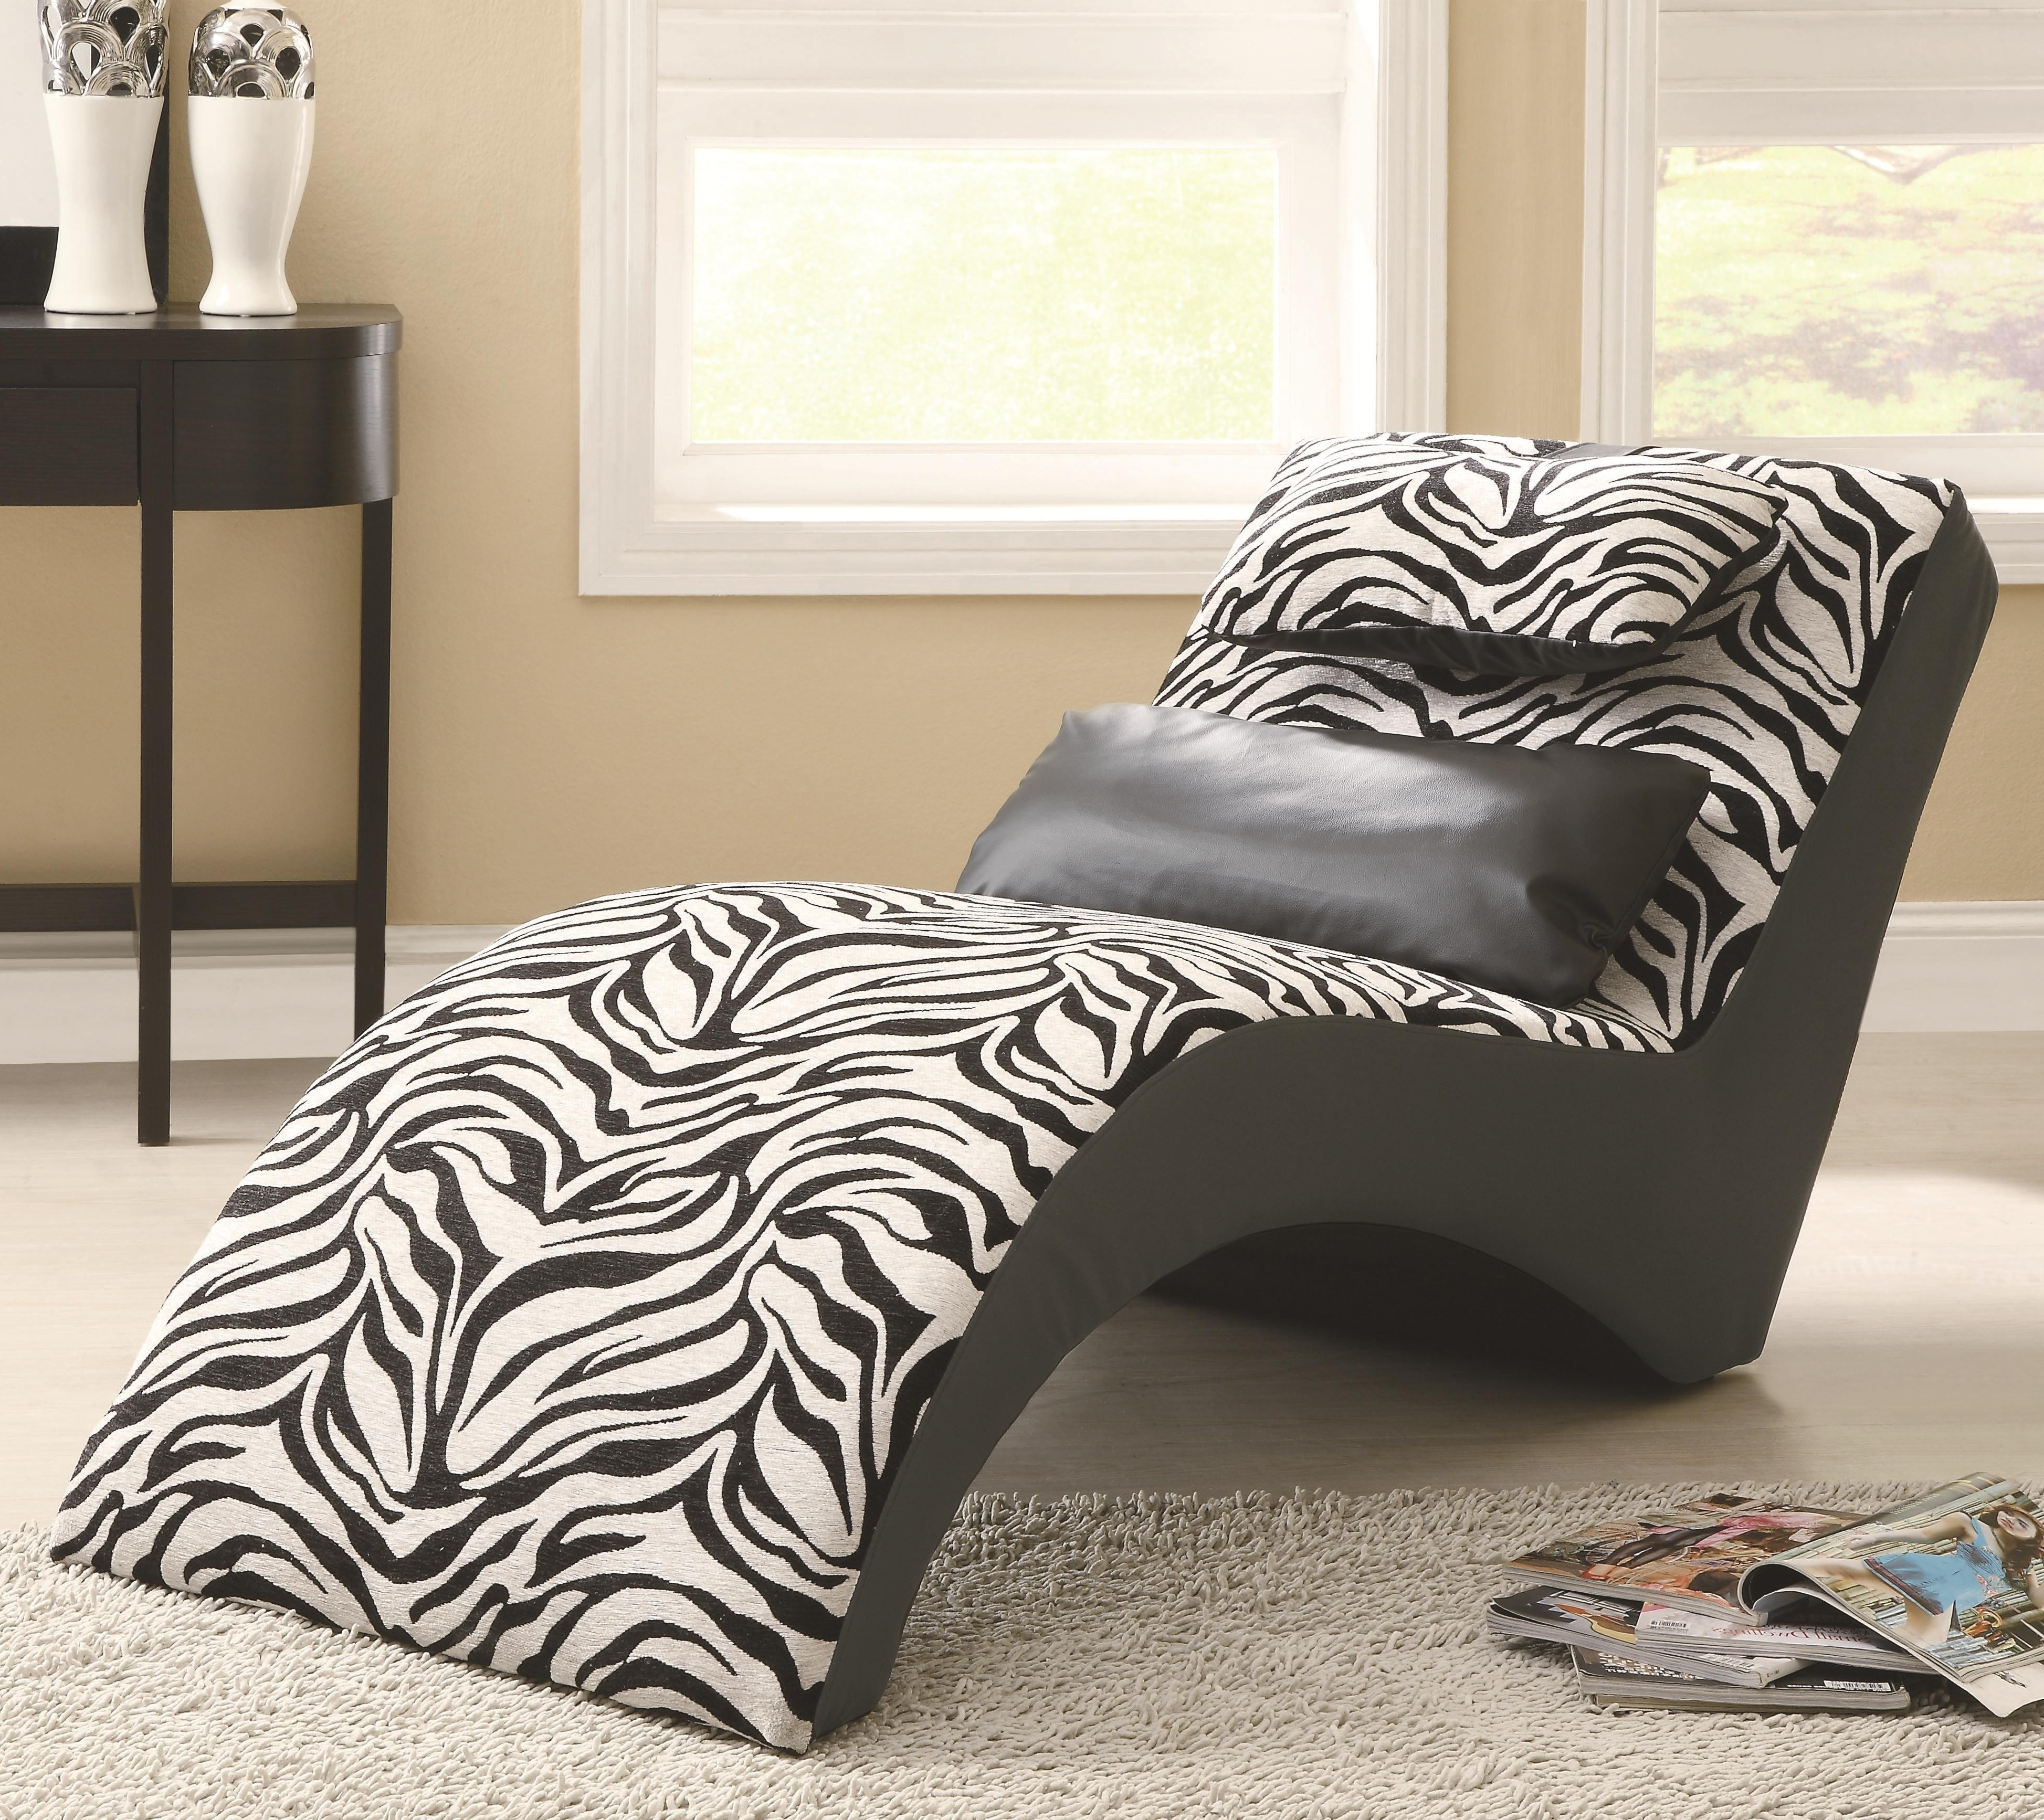 Best And Newest Zebra Print Chaise Lounge Chairs Intended For Furniture : Modern Zebra Print Modern Lounge Chair Near Black (View 4 of 15)